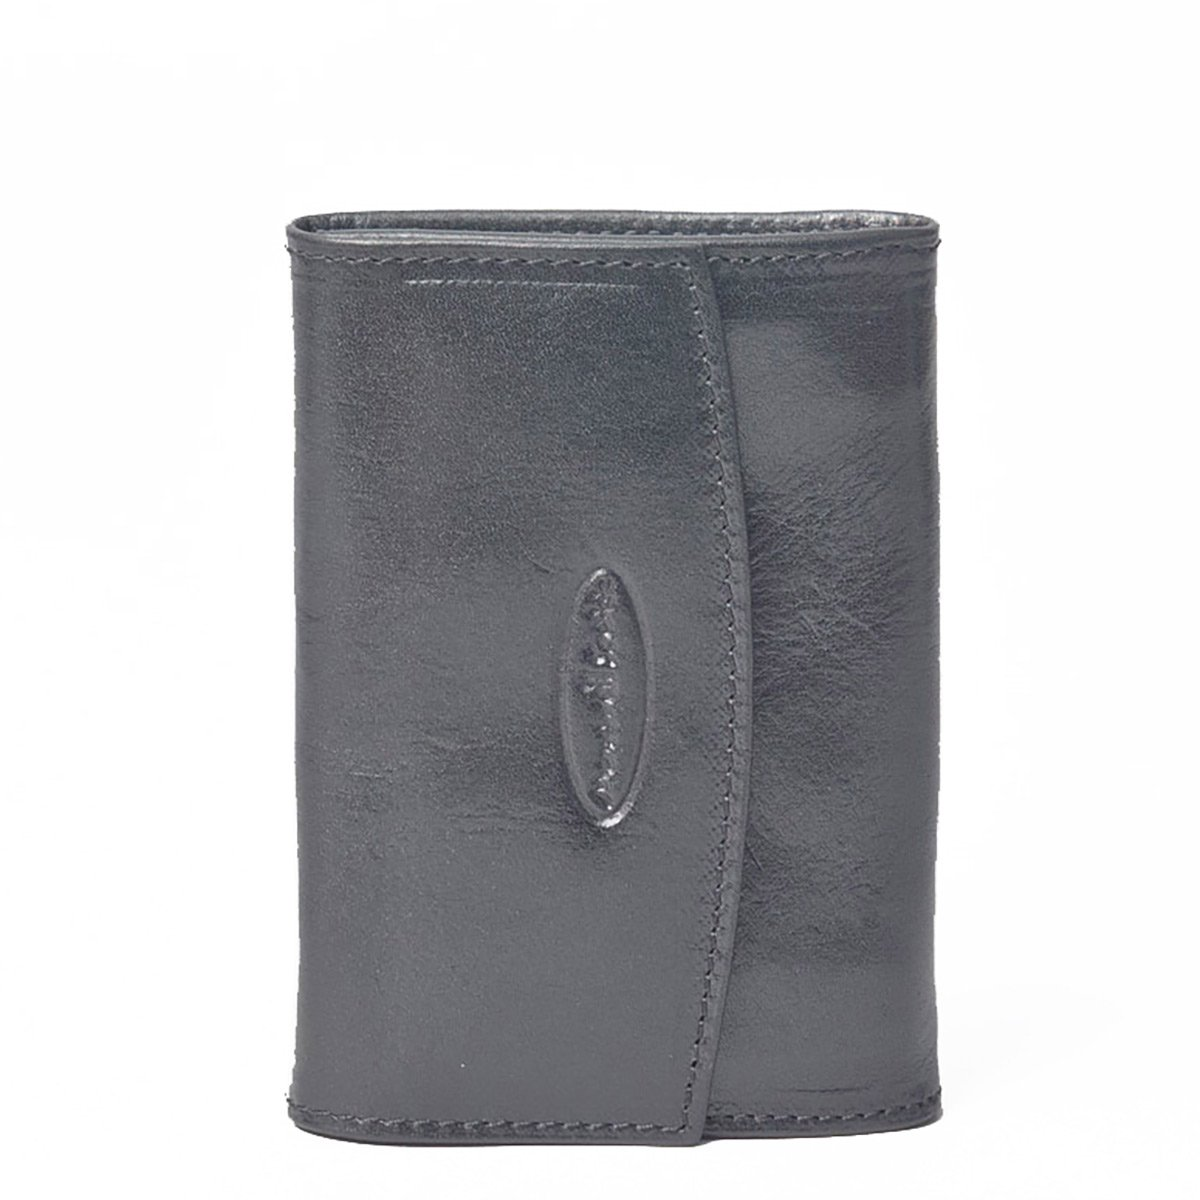 Maxwell Scott Luxury Black Leather Wallet for Ladies - Small (The Fontanelle)